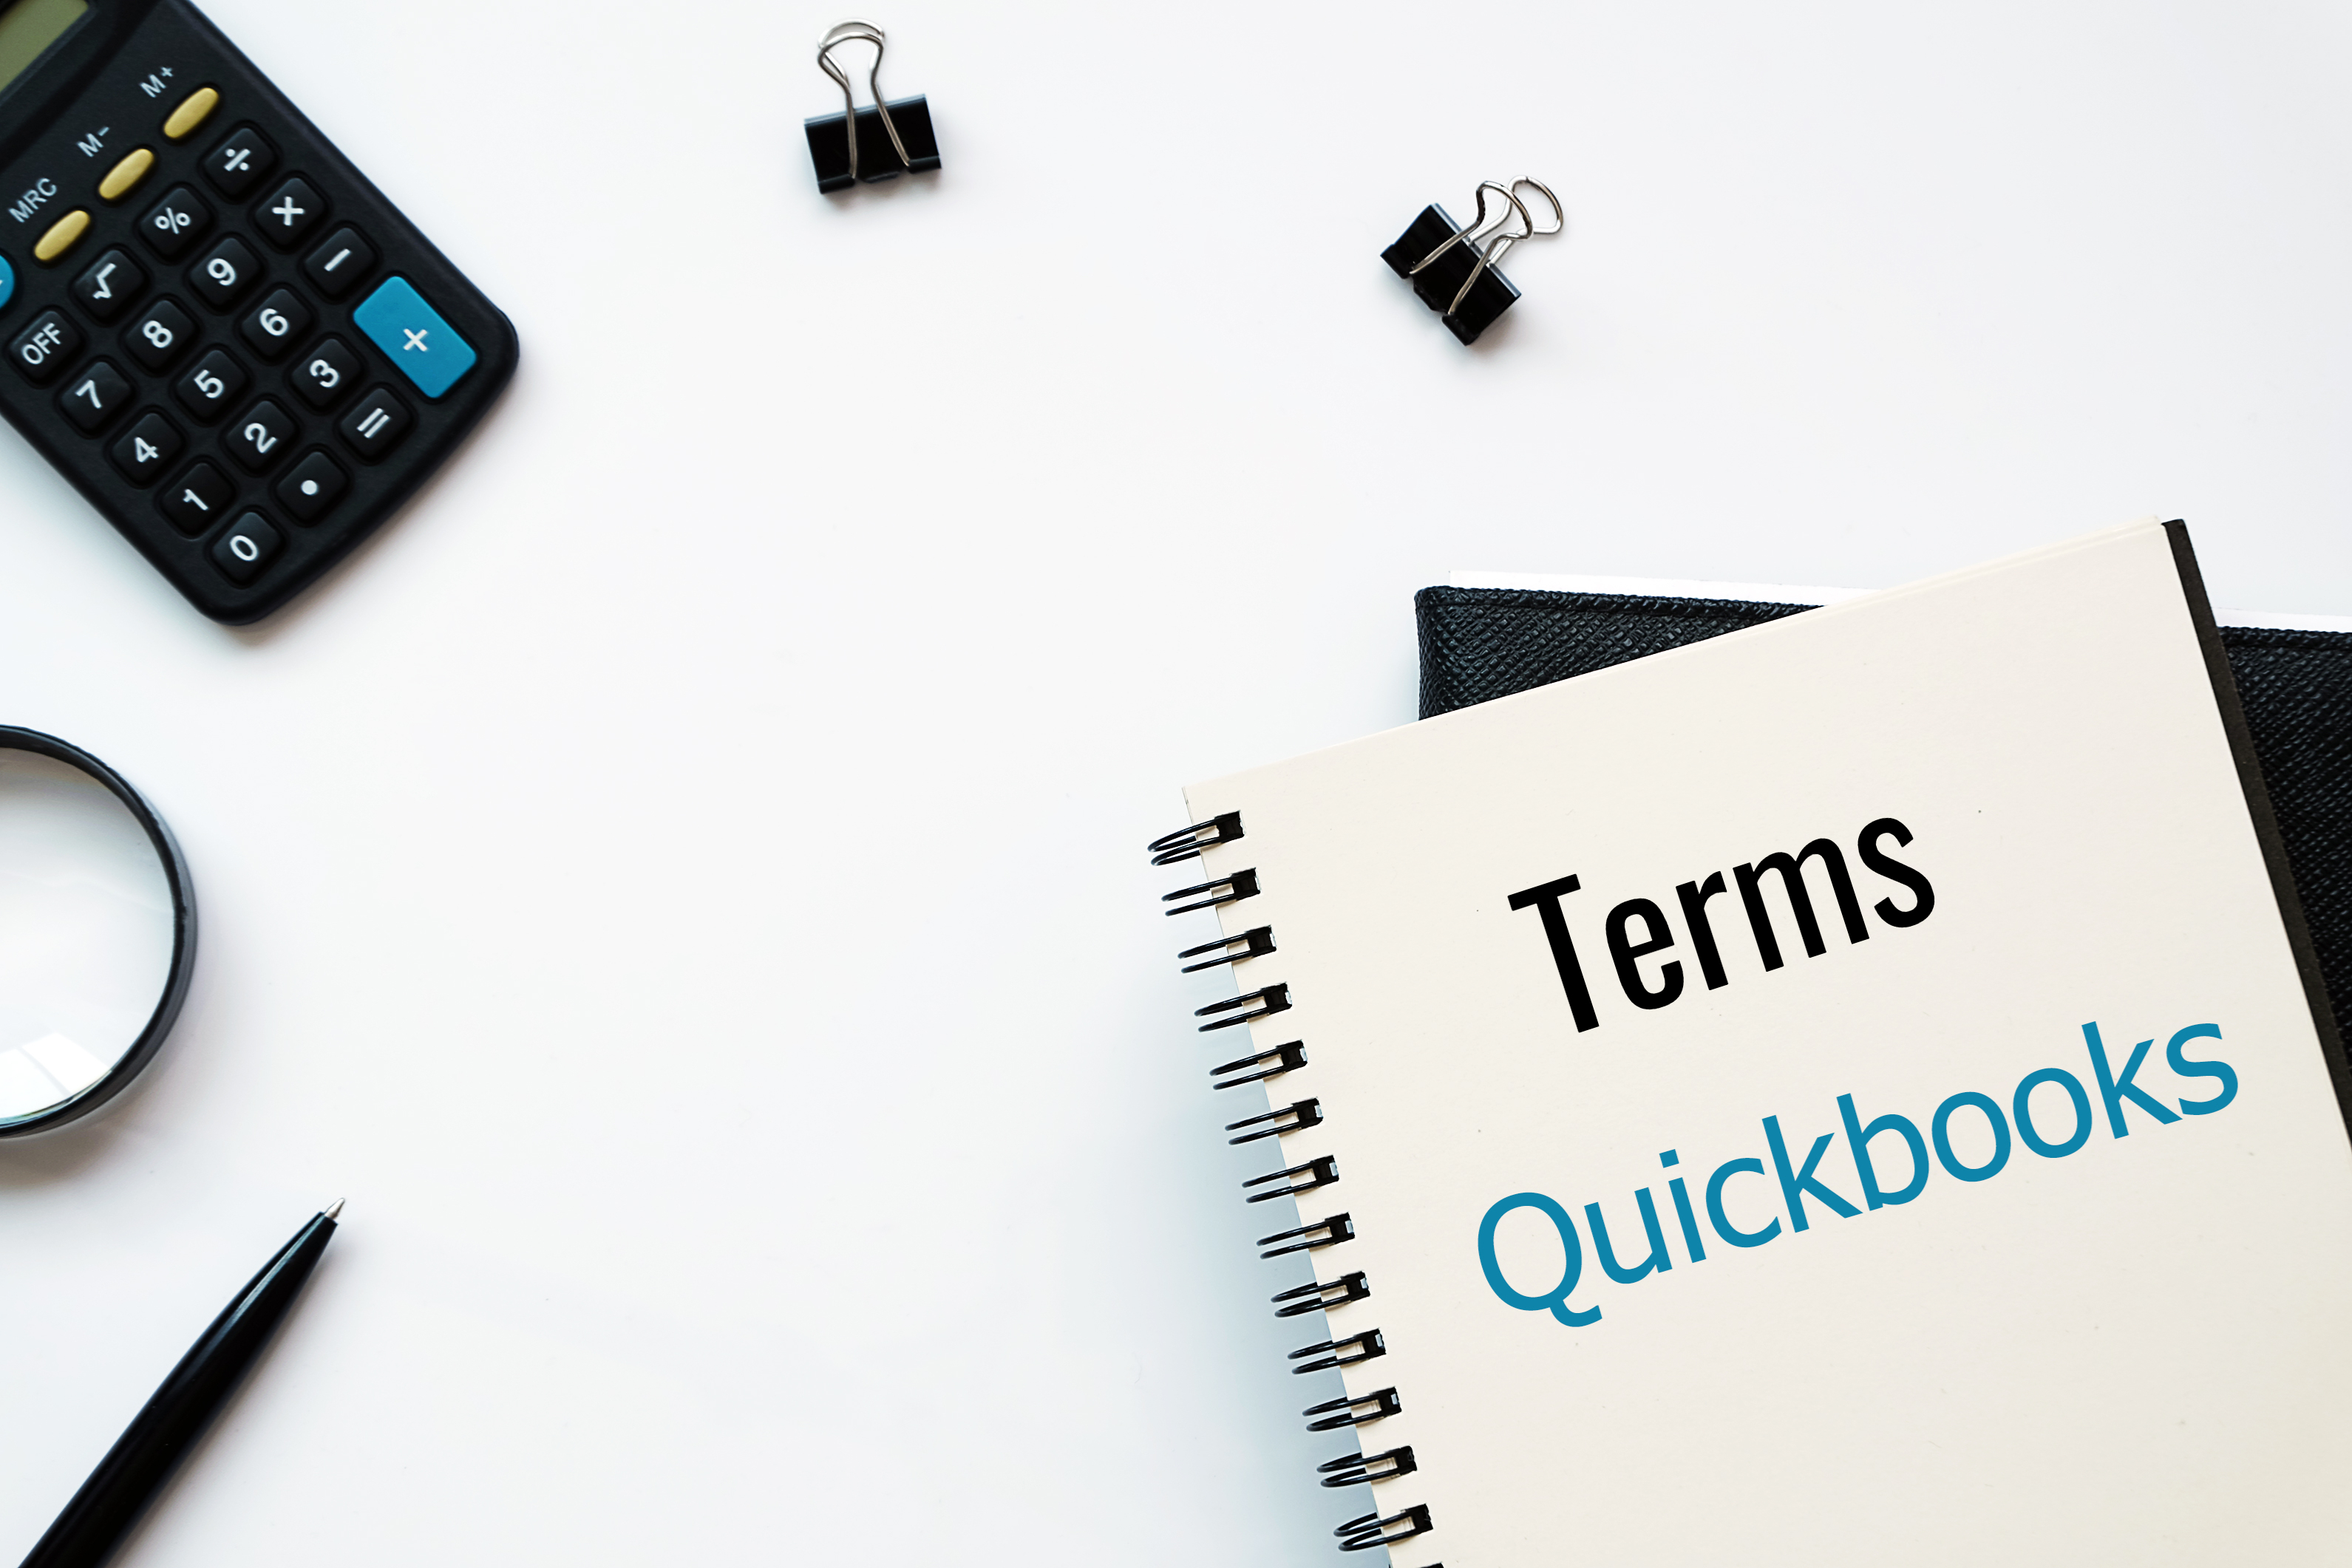 Common QuickBooks Terms Definitions